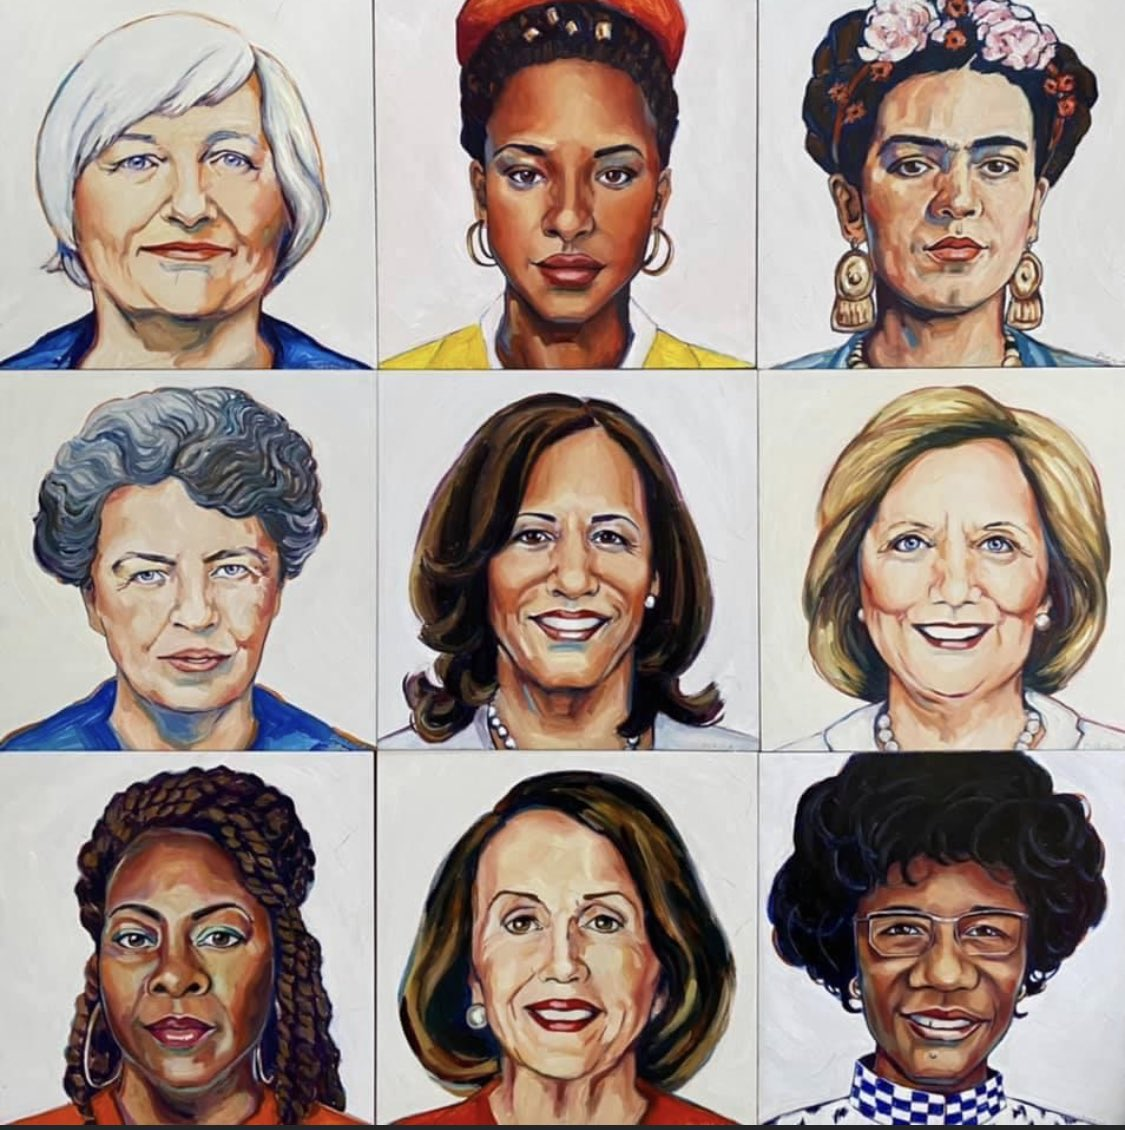 I'm very honored to be one of the women painted as part the Sheroe's series by artist TY Duryea. ❤️ I love this. These are some of my favorite women leaders. #AmandaGorman #Kamala #Frida #Hillary #Elenor #Shirley #Nancy #LaTosha @BlackVotersMtr